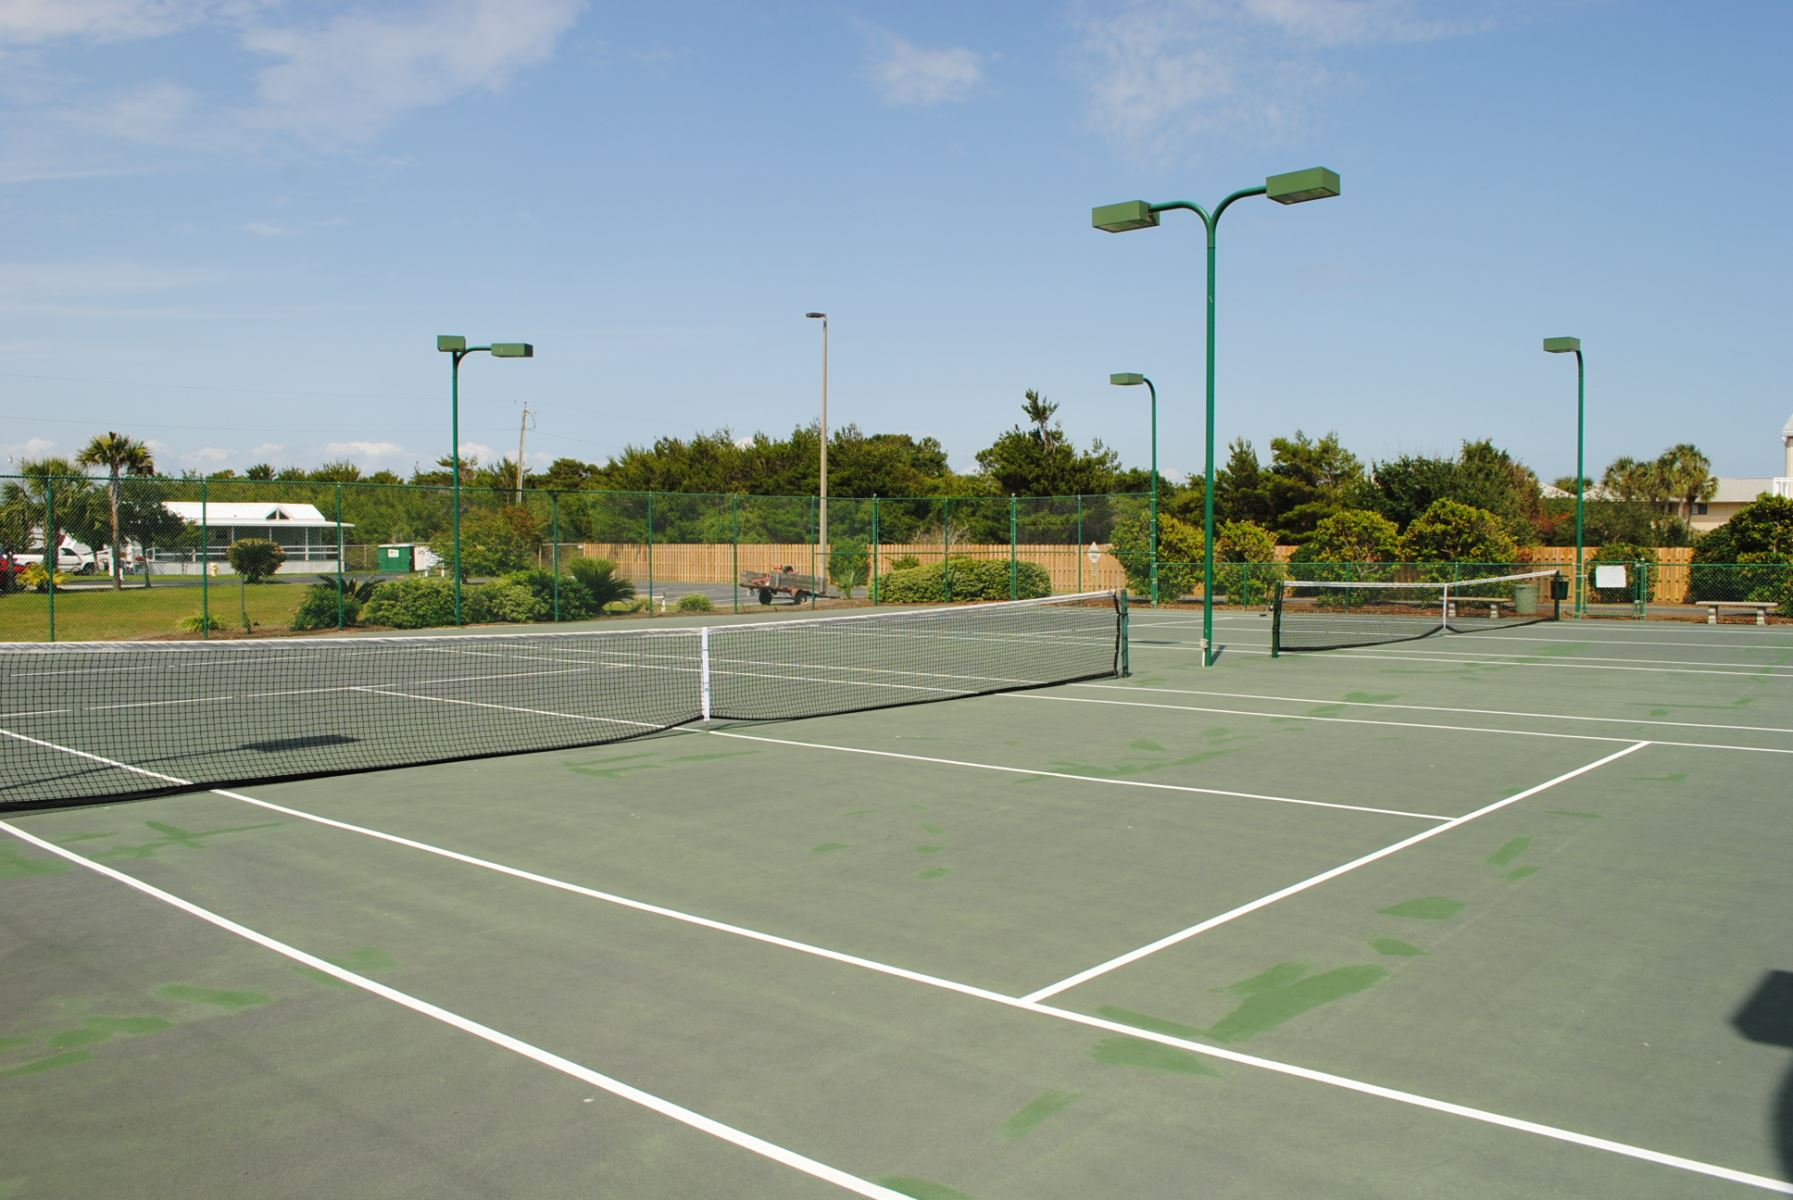 Do you Tennis? You will have free access to 2 lighted courts. Enjoy!